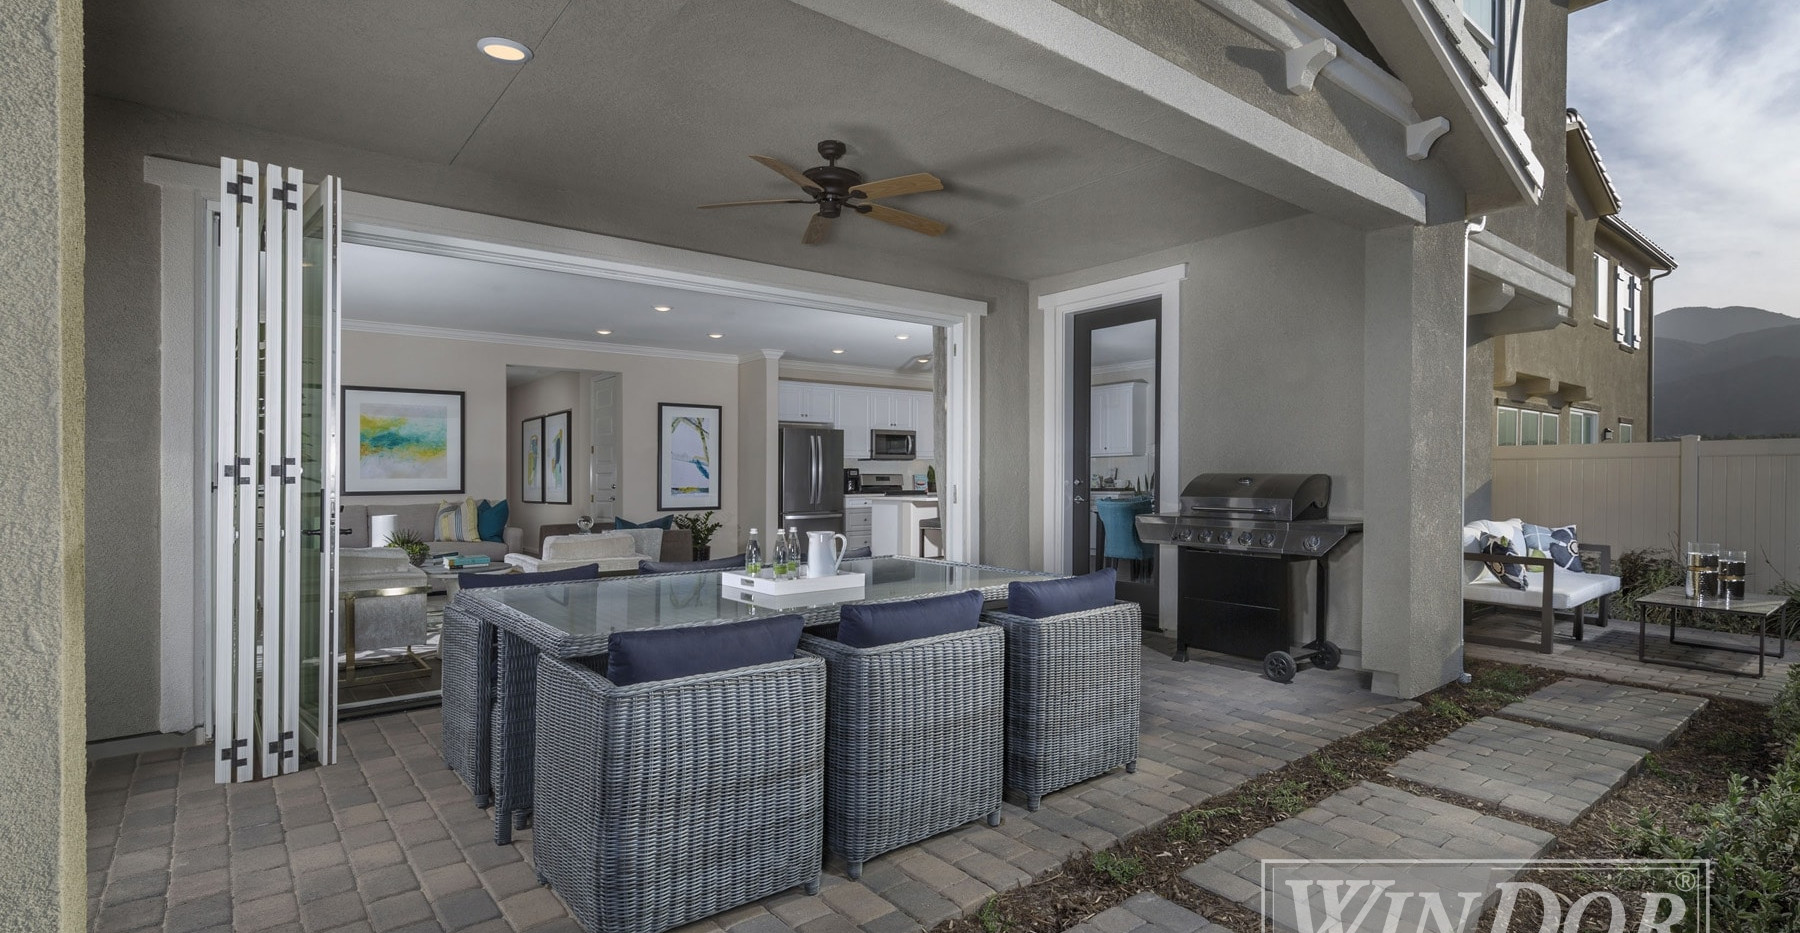 KBIE_Caraway-Terramor_Res4-Patio-OPEN_83